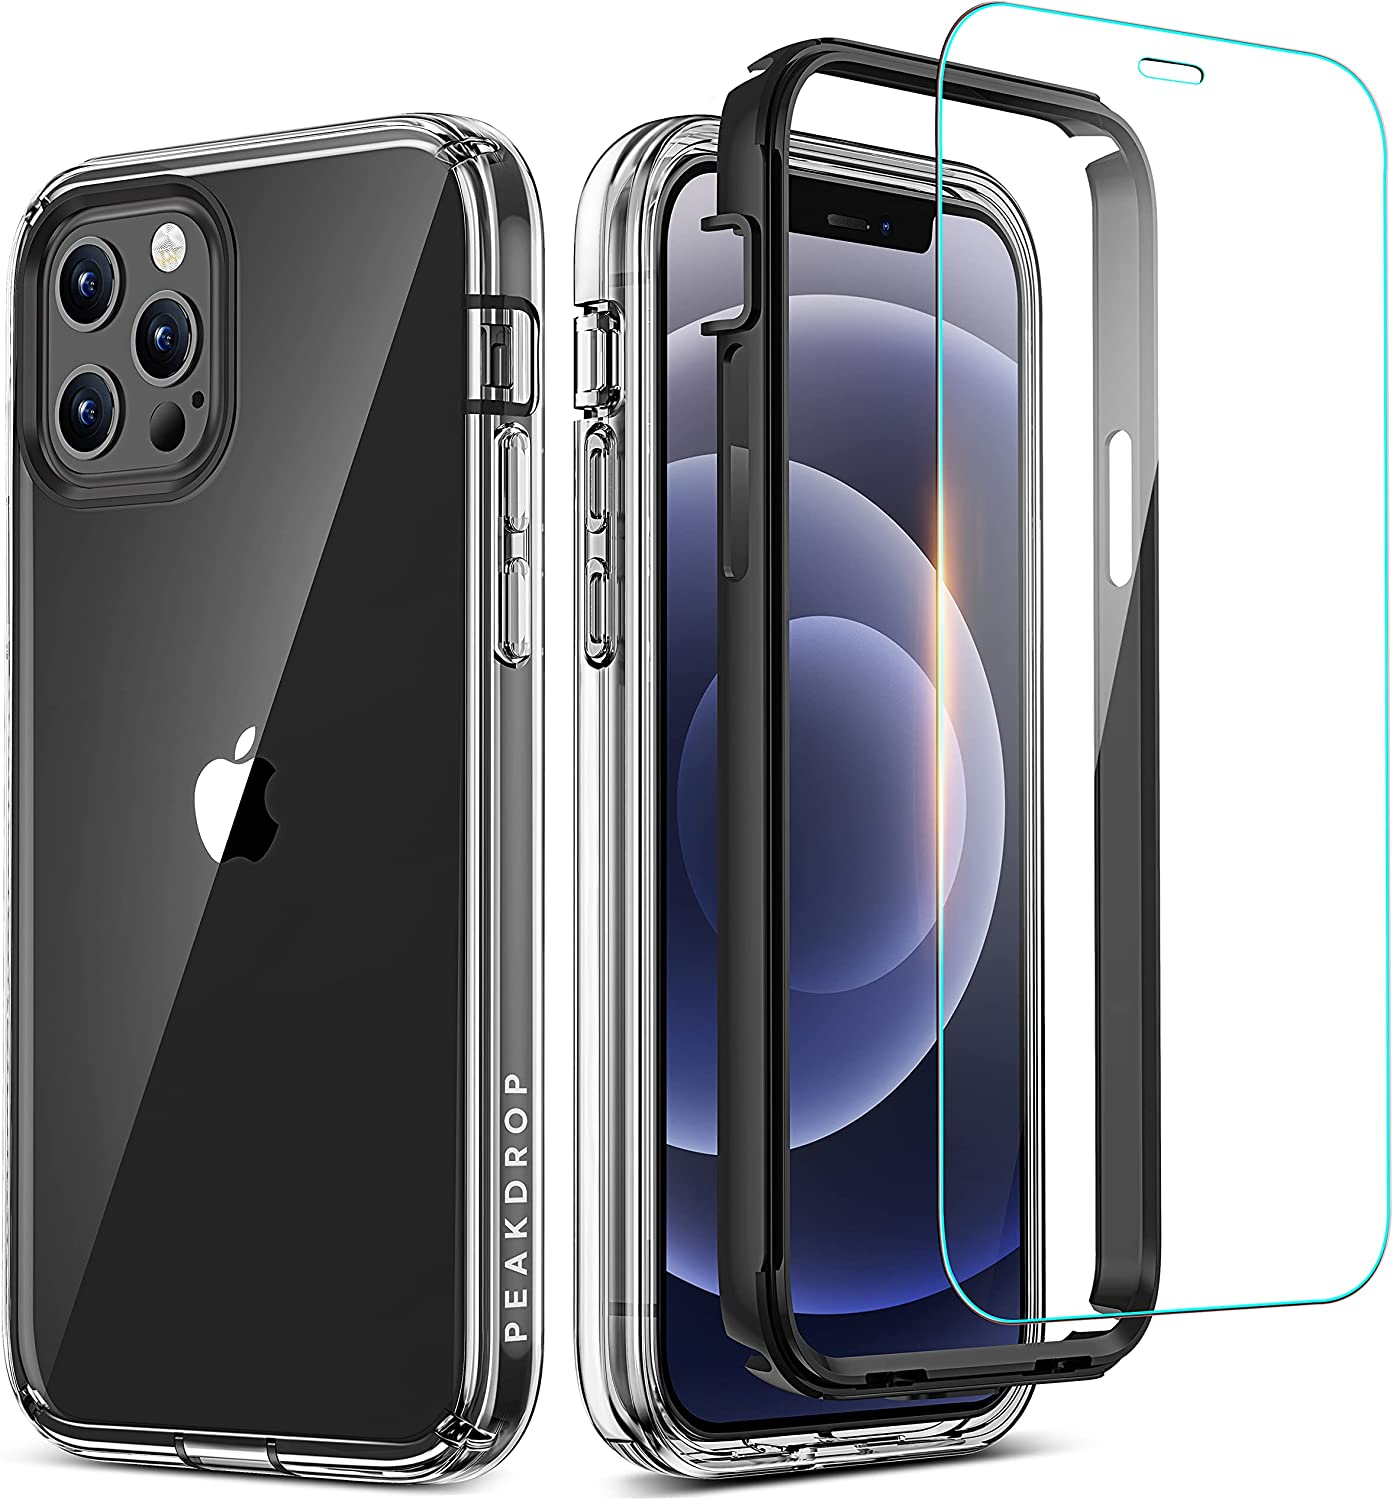 PeakDrop Compatible with iPhone 12 Case/iPhone 12 Pro Case, Clear Full Body Heavy Duty [Non-Yellowing] Protective Transparent Cover (2X Glass Screen Protector Included) - Black